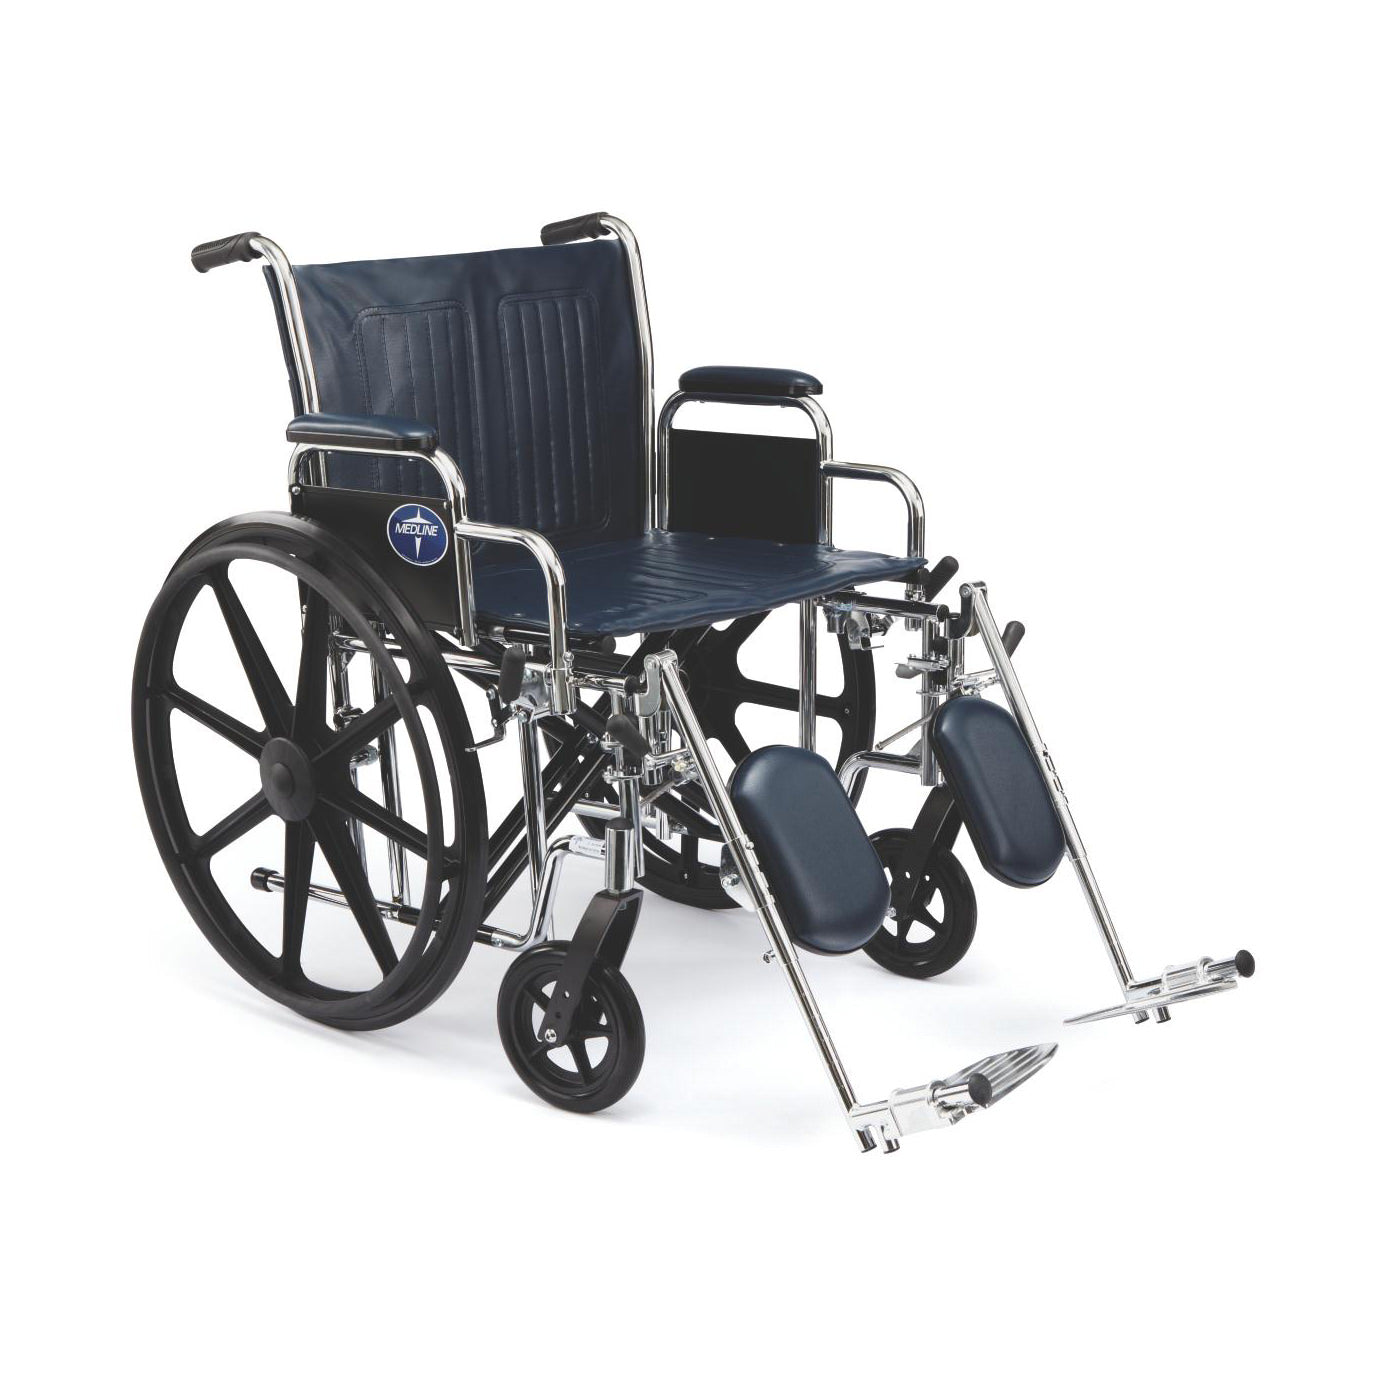 Medline Excel Extra-Wide Wheelchair-Detachable Footrests